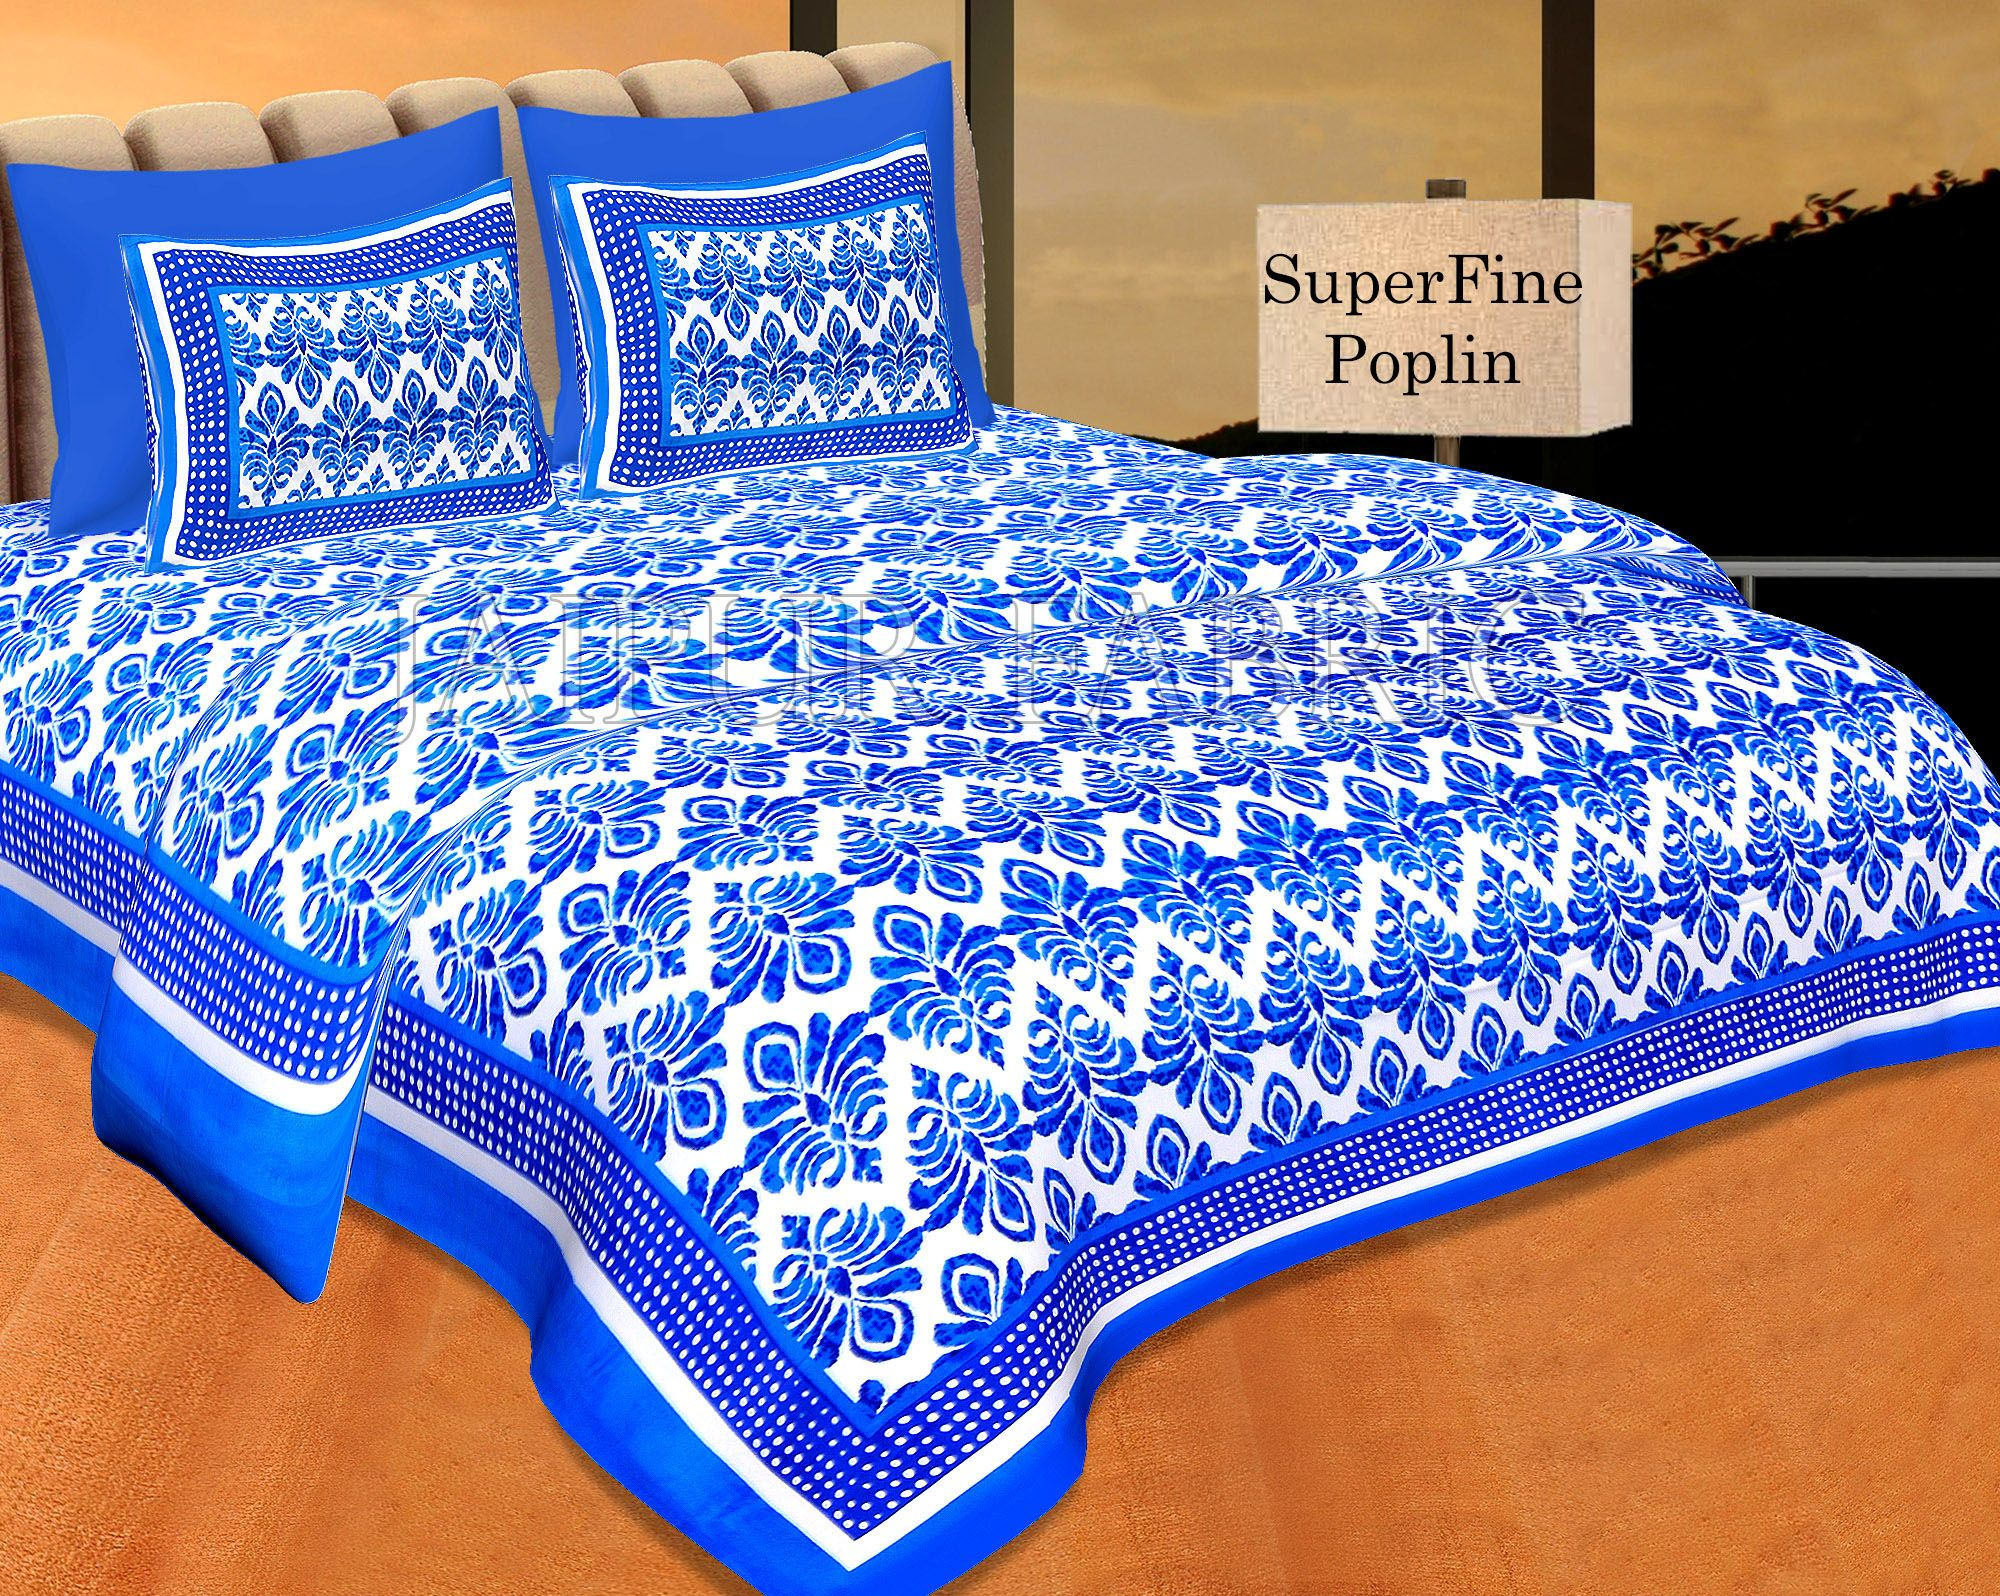 Blue Border Polka Frame Whit Base Blue Flower Print Super Fine Poplin Cotton Double Bedsheet With Two Pillow